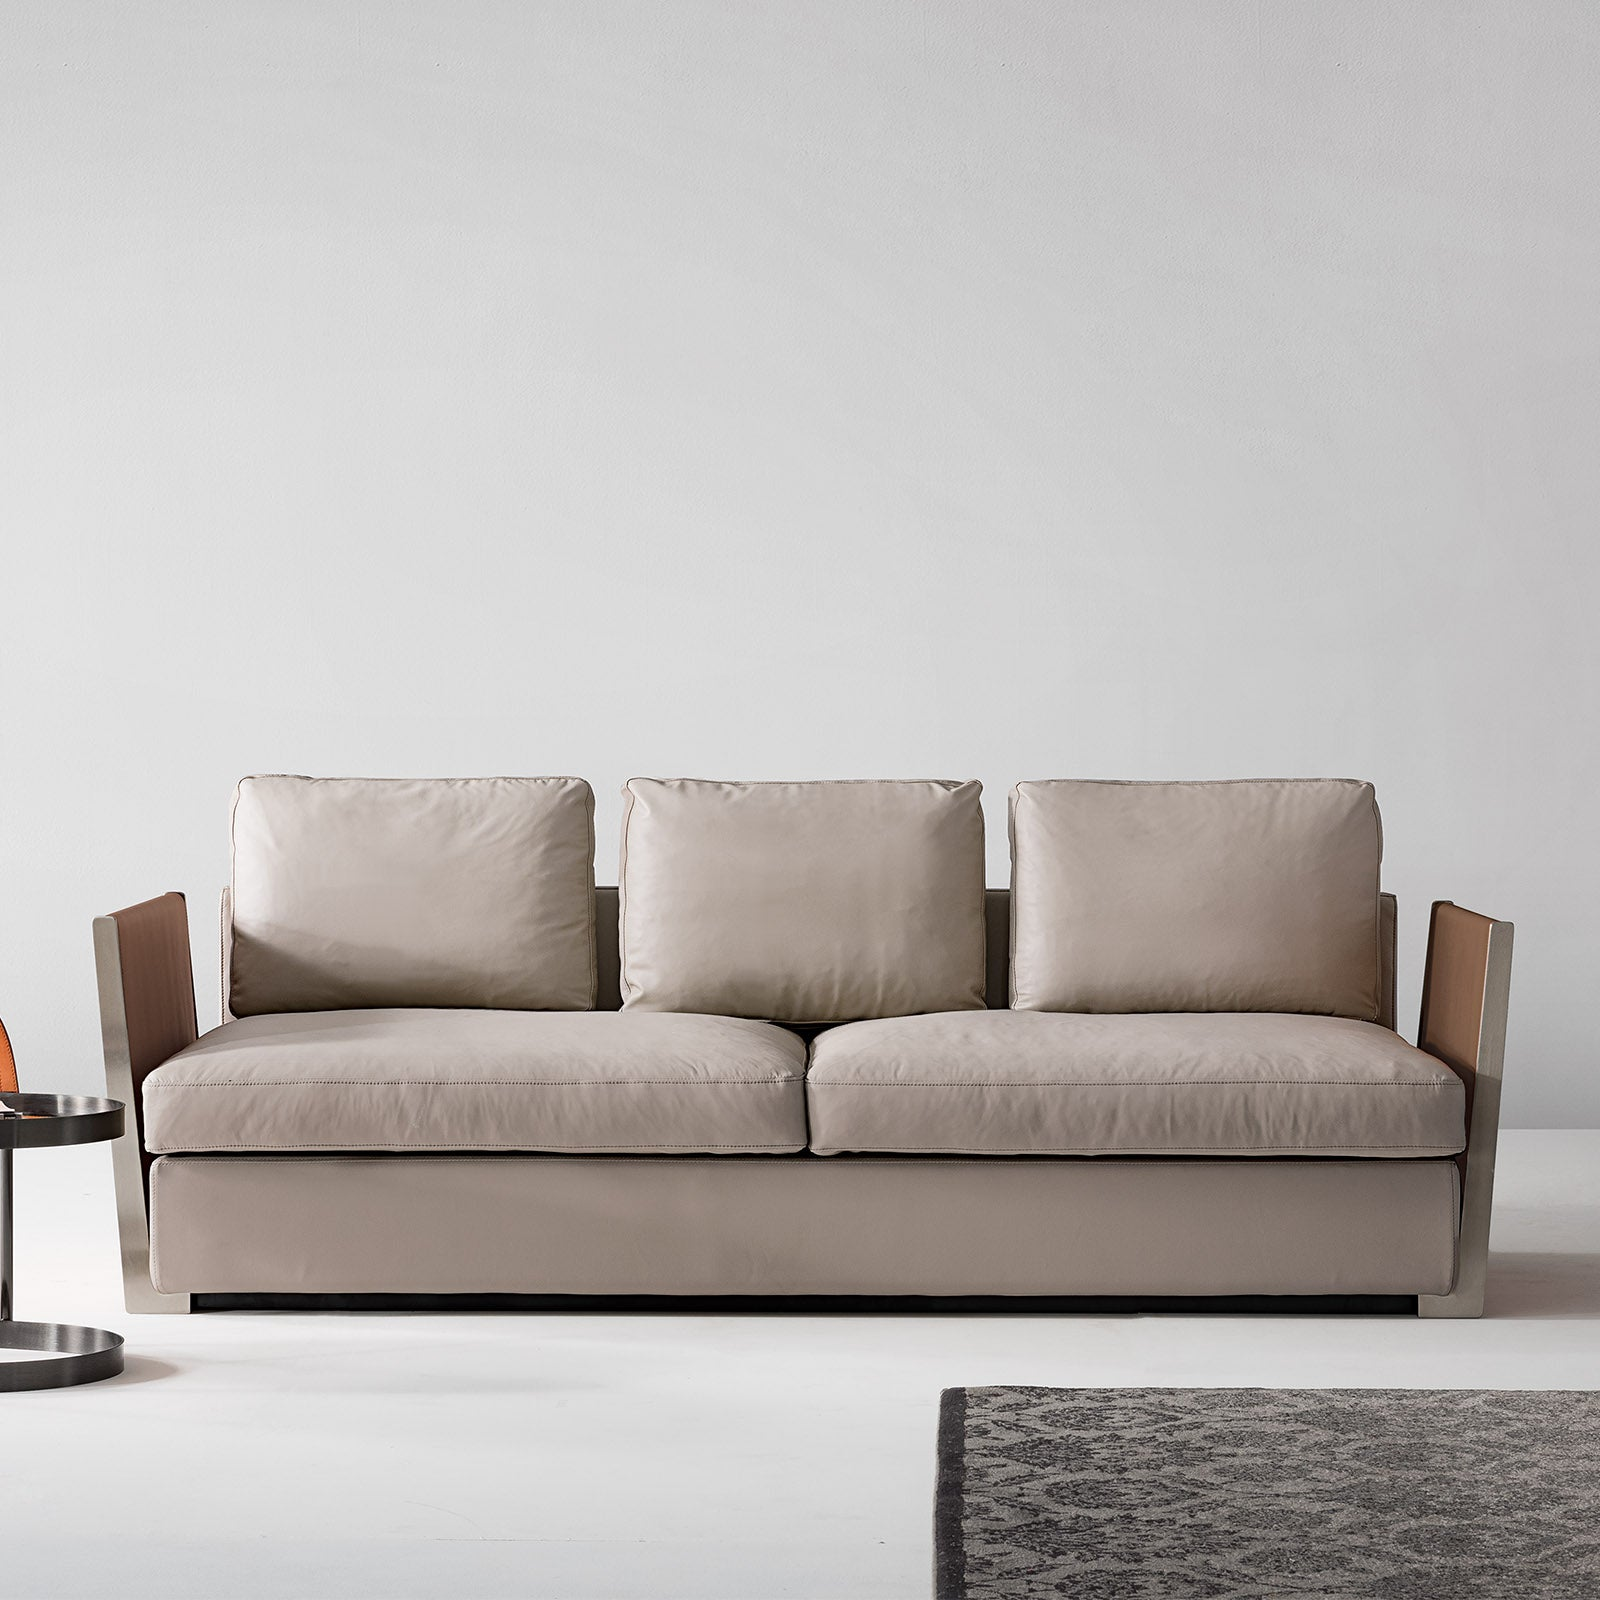 Forlì 3 seat sofa  SF041-3CL+O sofa -  كنبة فرولي 3 مقاعد - Shop Online Furniture and Home Decor Store in Dubai, UAE at ebarza